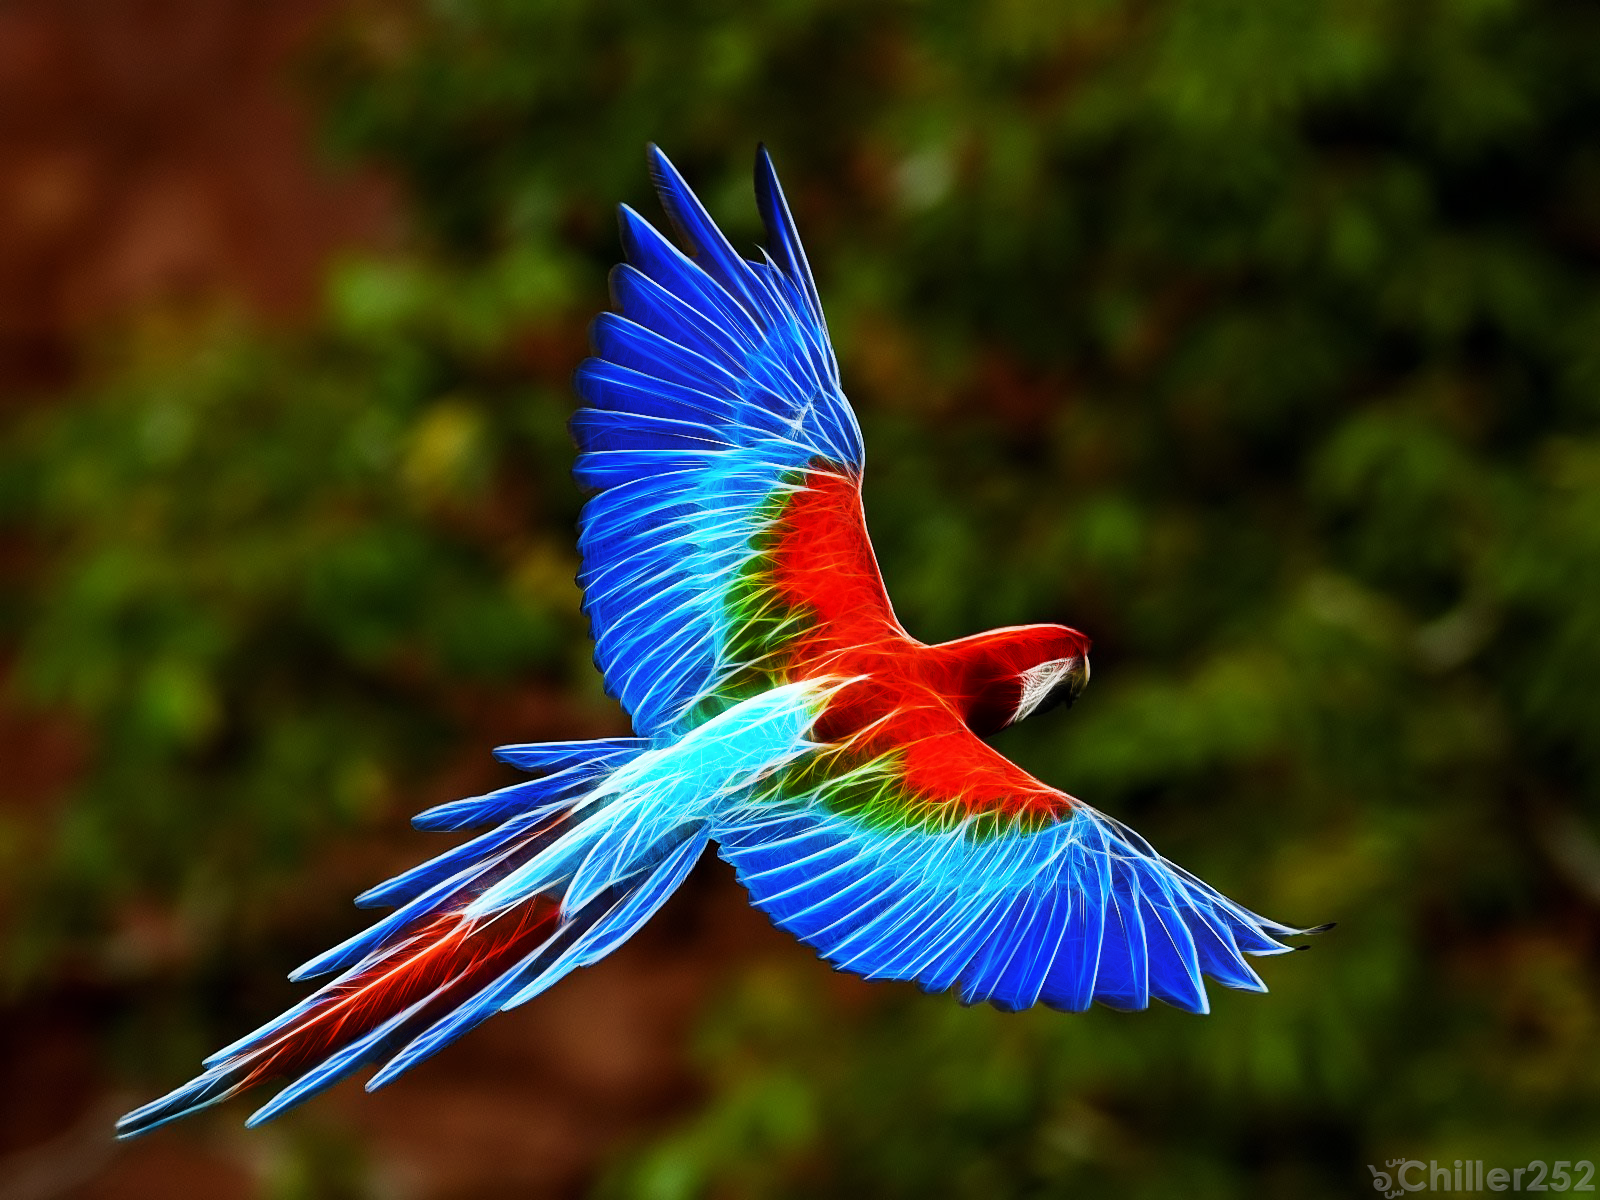 Colorful Bird Hd Wide Wallpaper For Widescreen Wallpapers) Hd Wallpapers